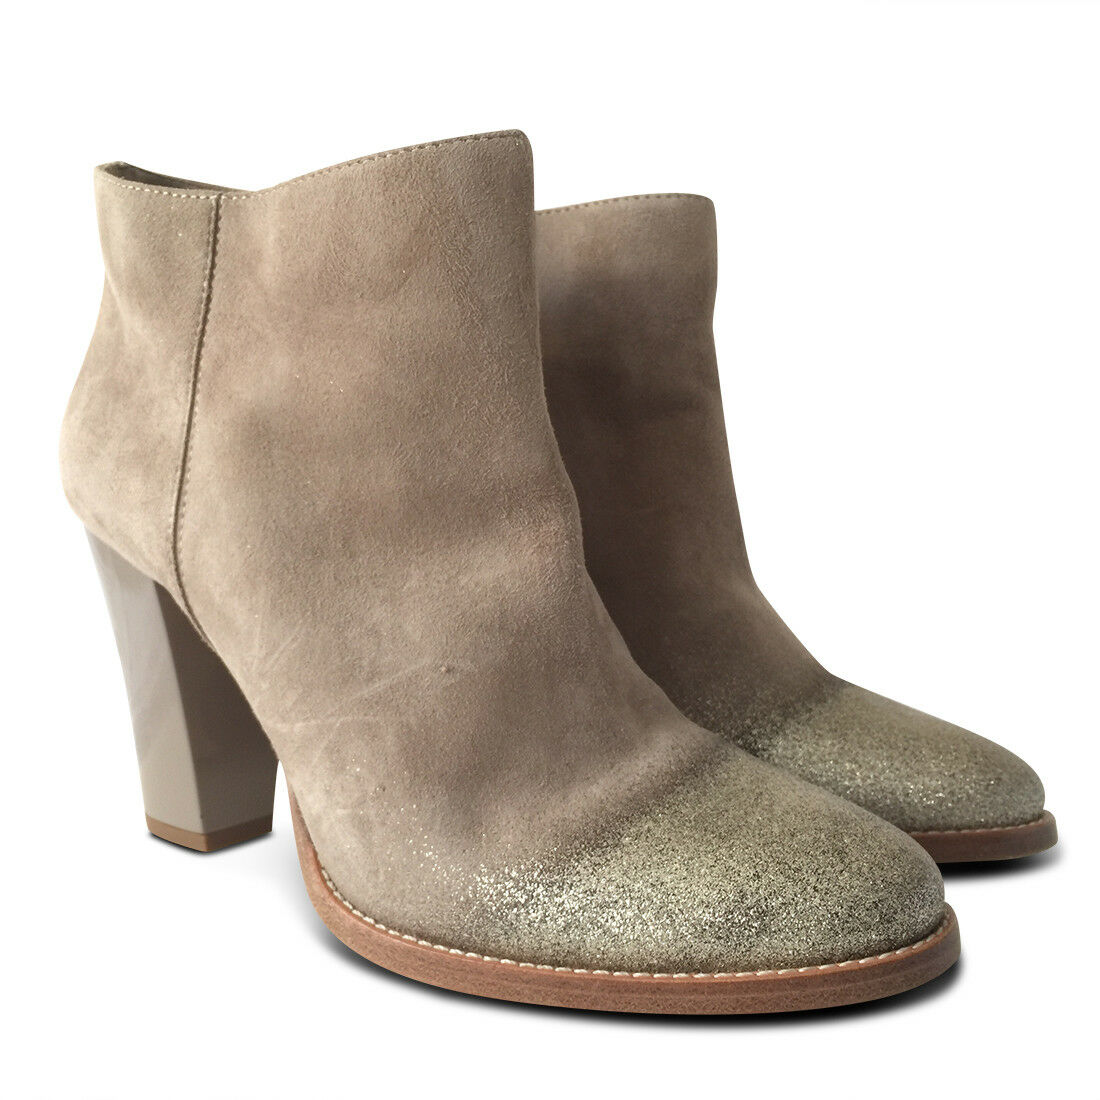 NEW NEW NEW Jimmy Choo Marley Glitter Suede Ankle démarrage - Beige - Taille 40 111885